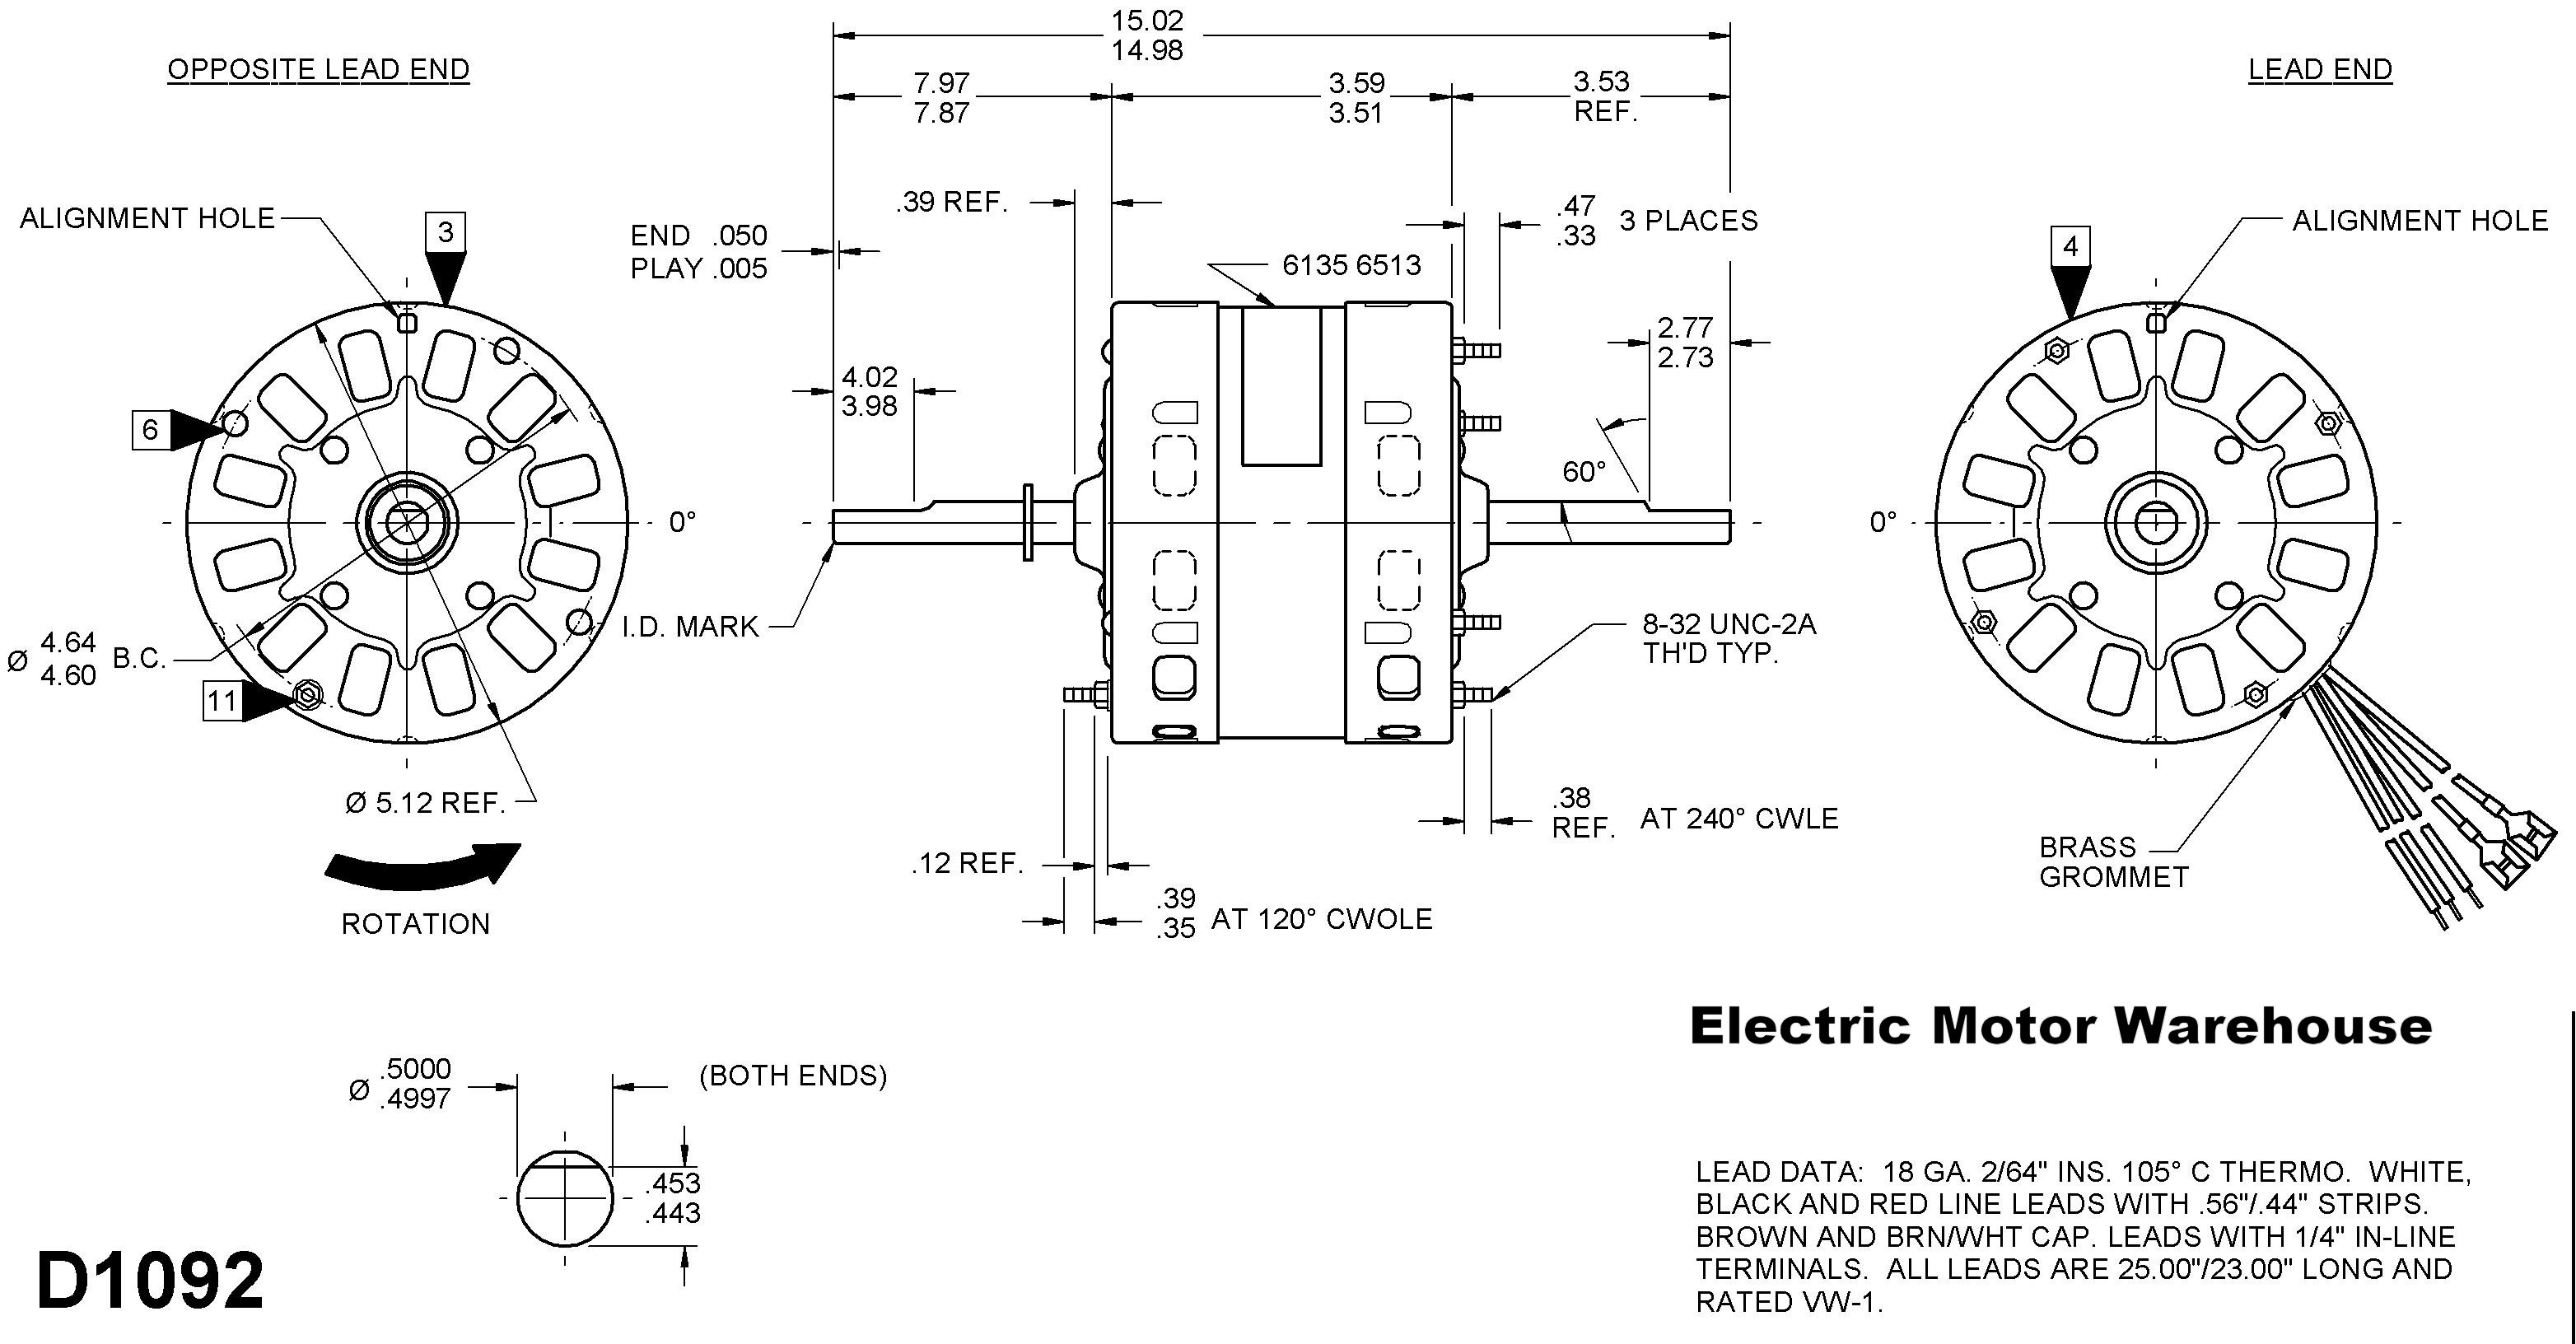 D1092_drawing 1 3 hp 115v 1625 rpm 2 speed rv air conditioner motor (7184 0156 2 Speed Motor Wiring Diagram at aneh.co